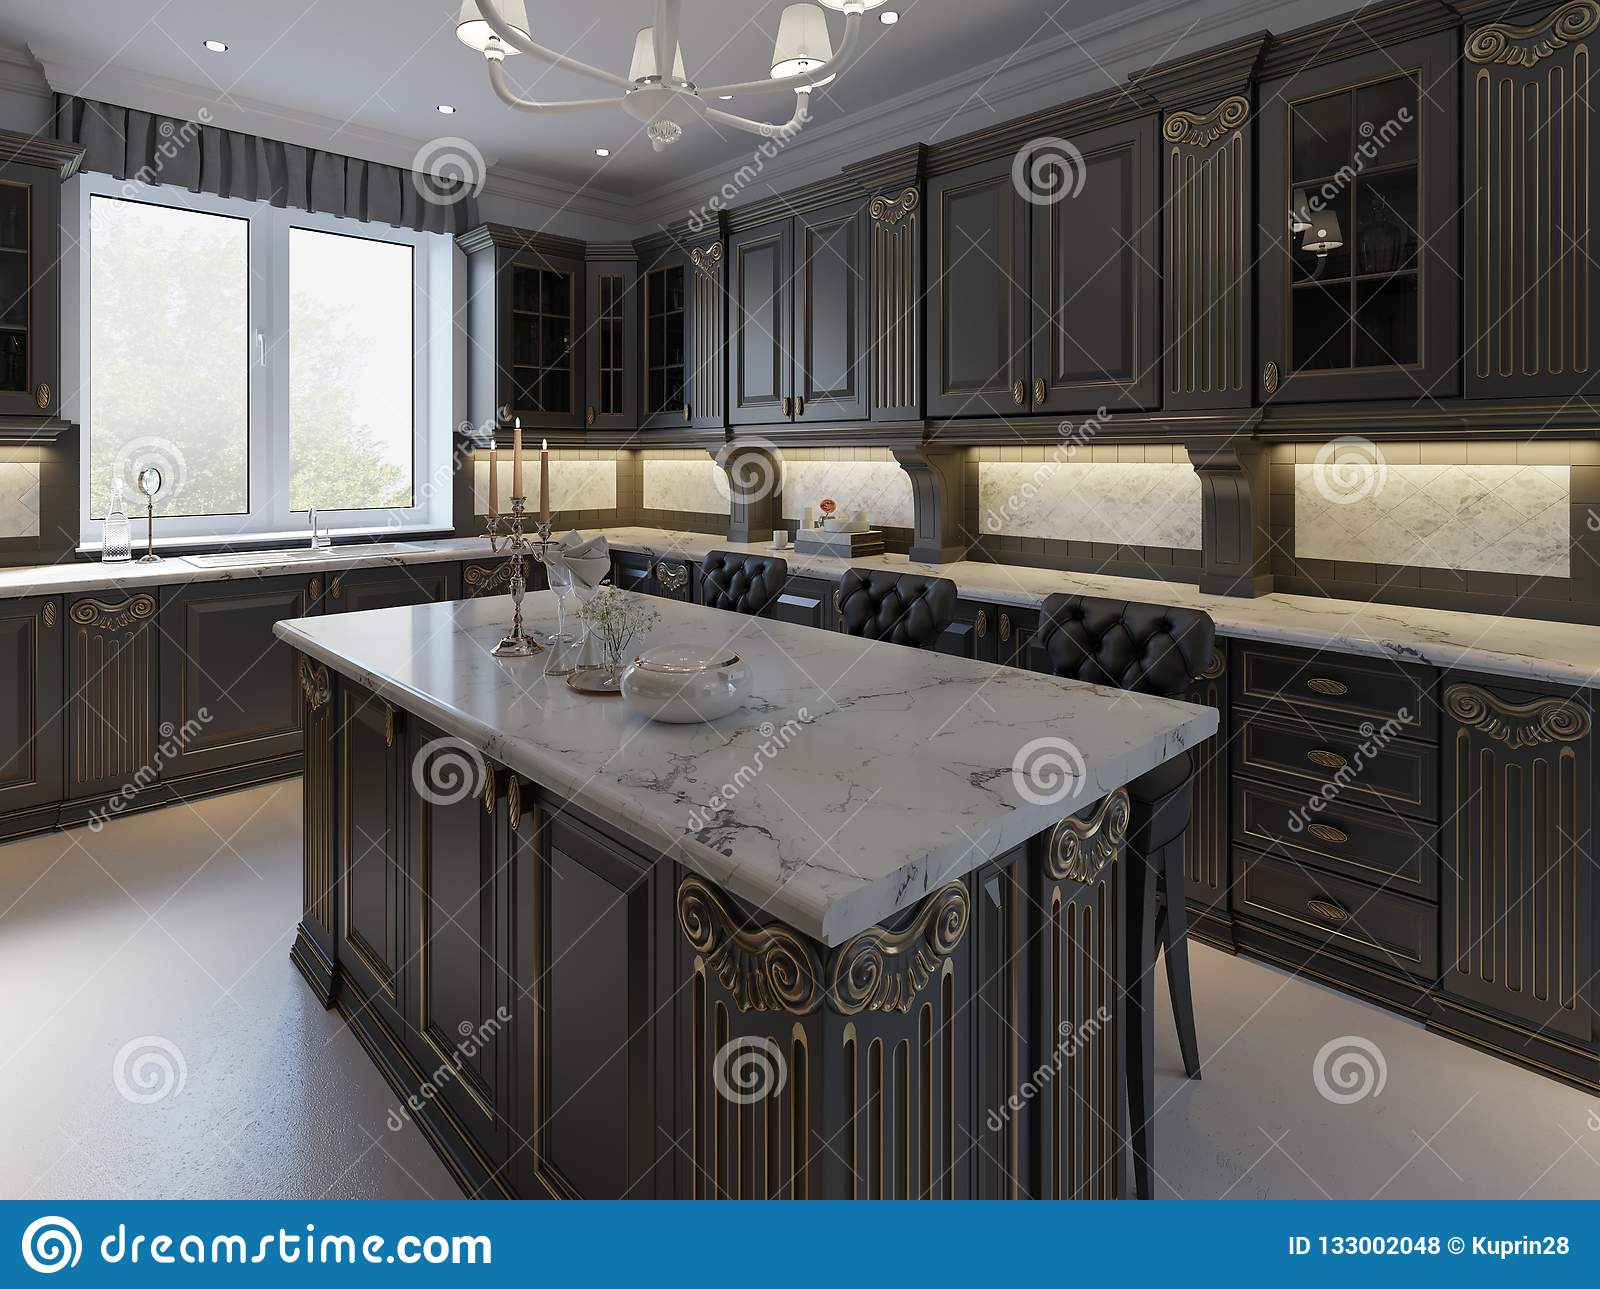 Black Bar Stools At Kitchen Island In Bright Living Room ...